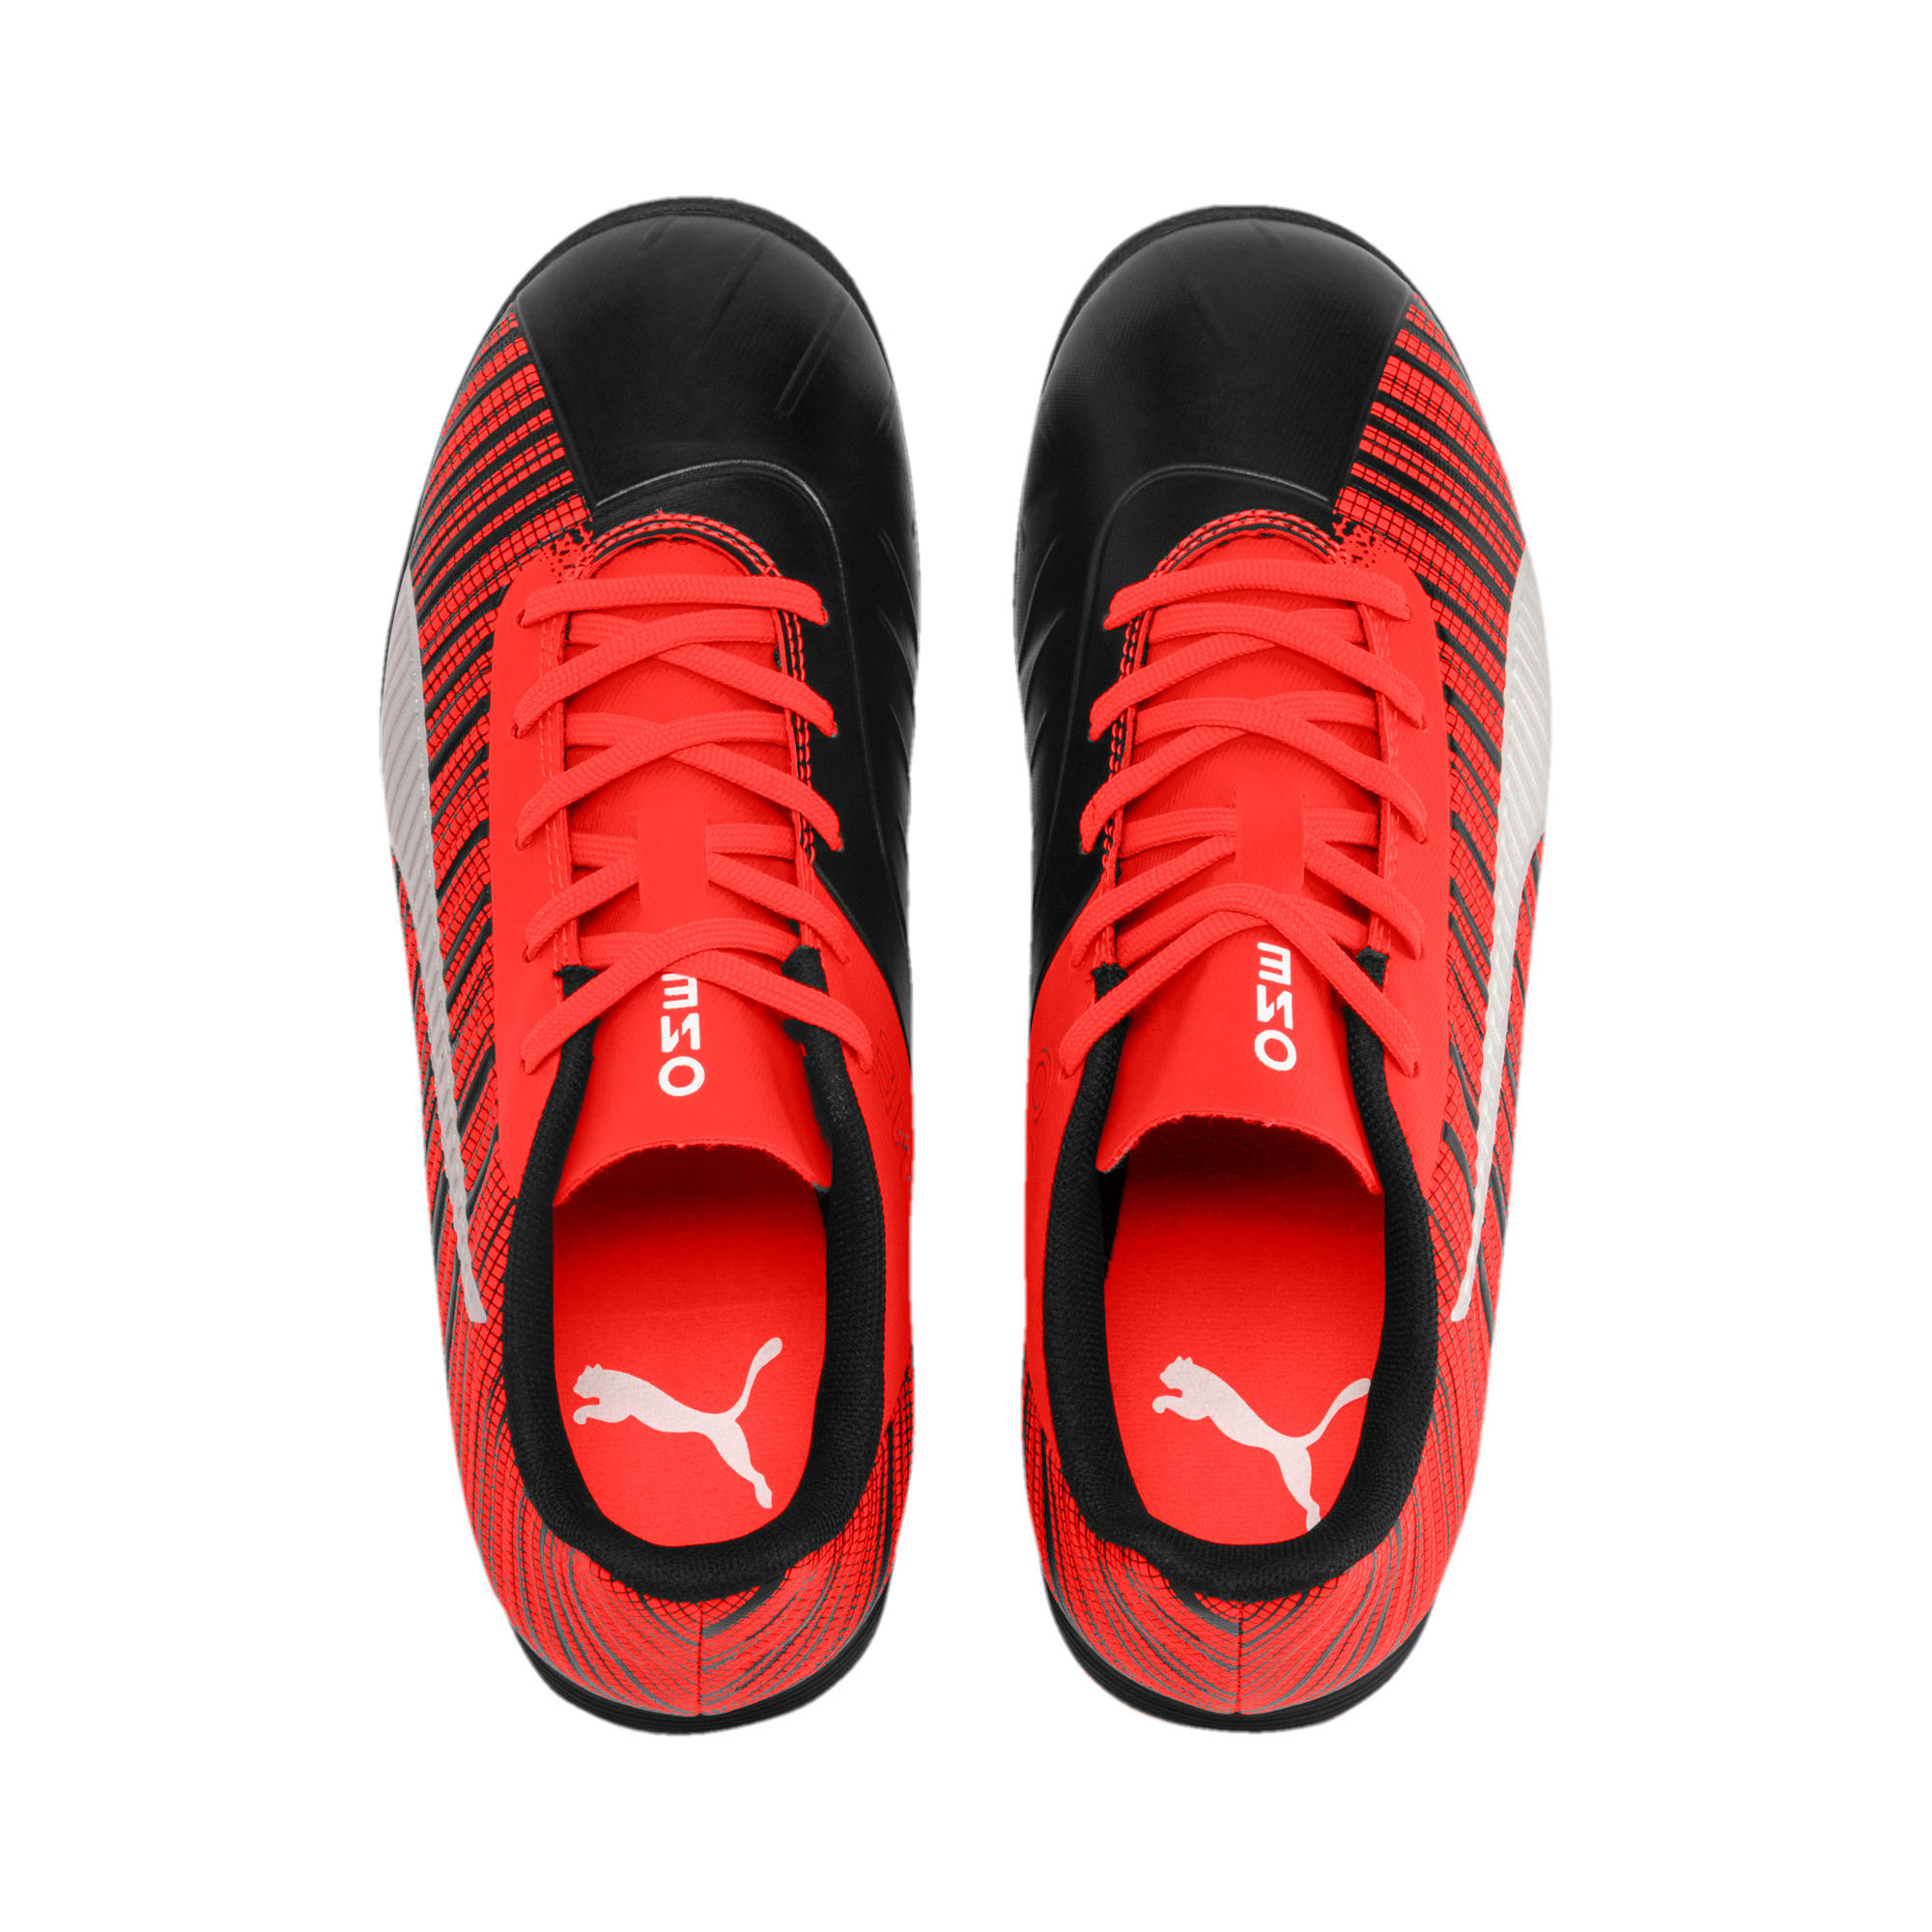 Thumbnail 6 of PUMA ONE 5.4 TT Youth Football Boots, Black-Nrgy Red-Aged Silver, medium